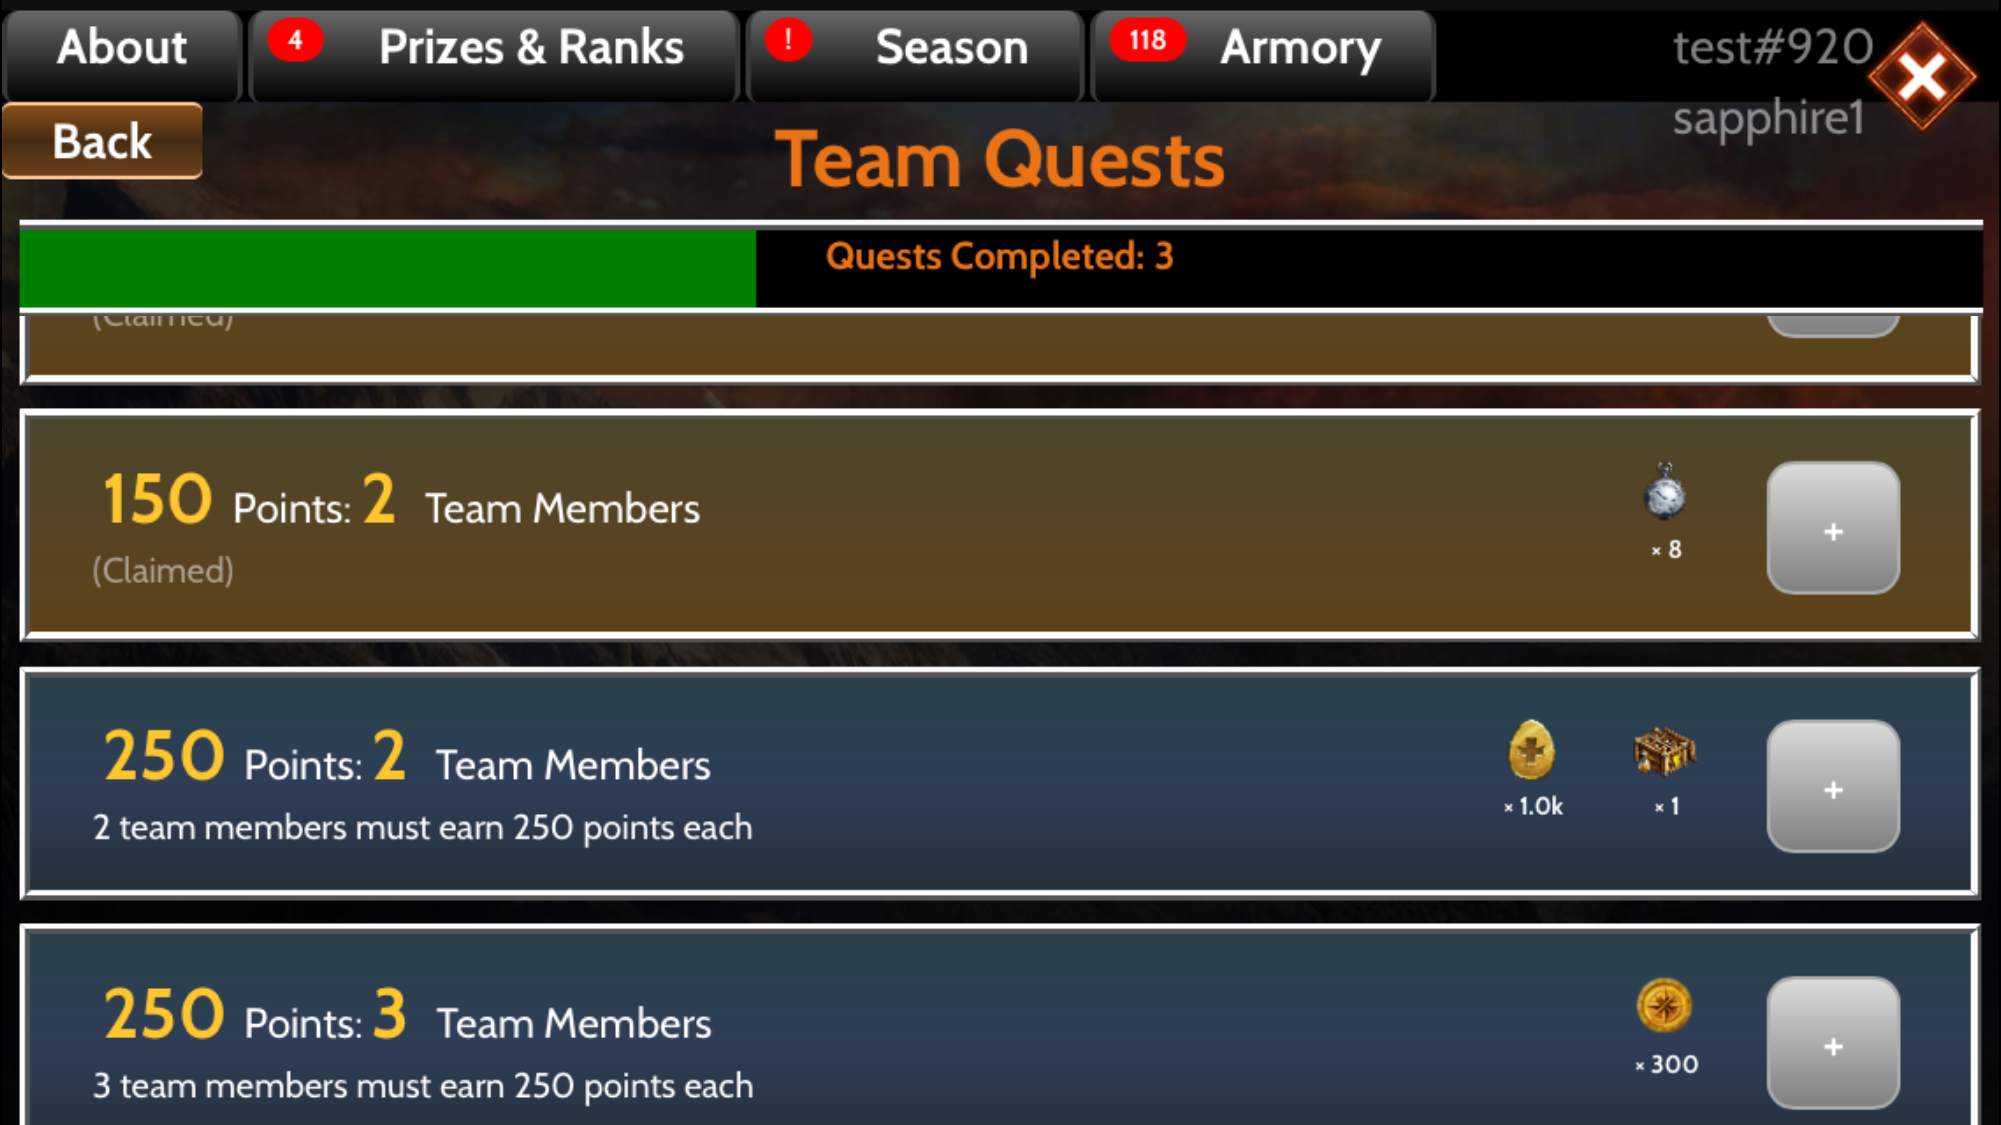 Team Quests